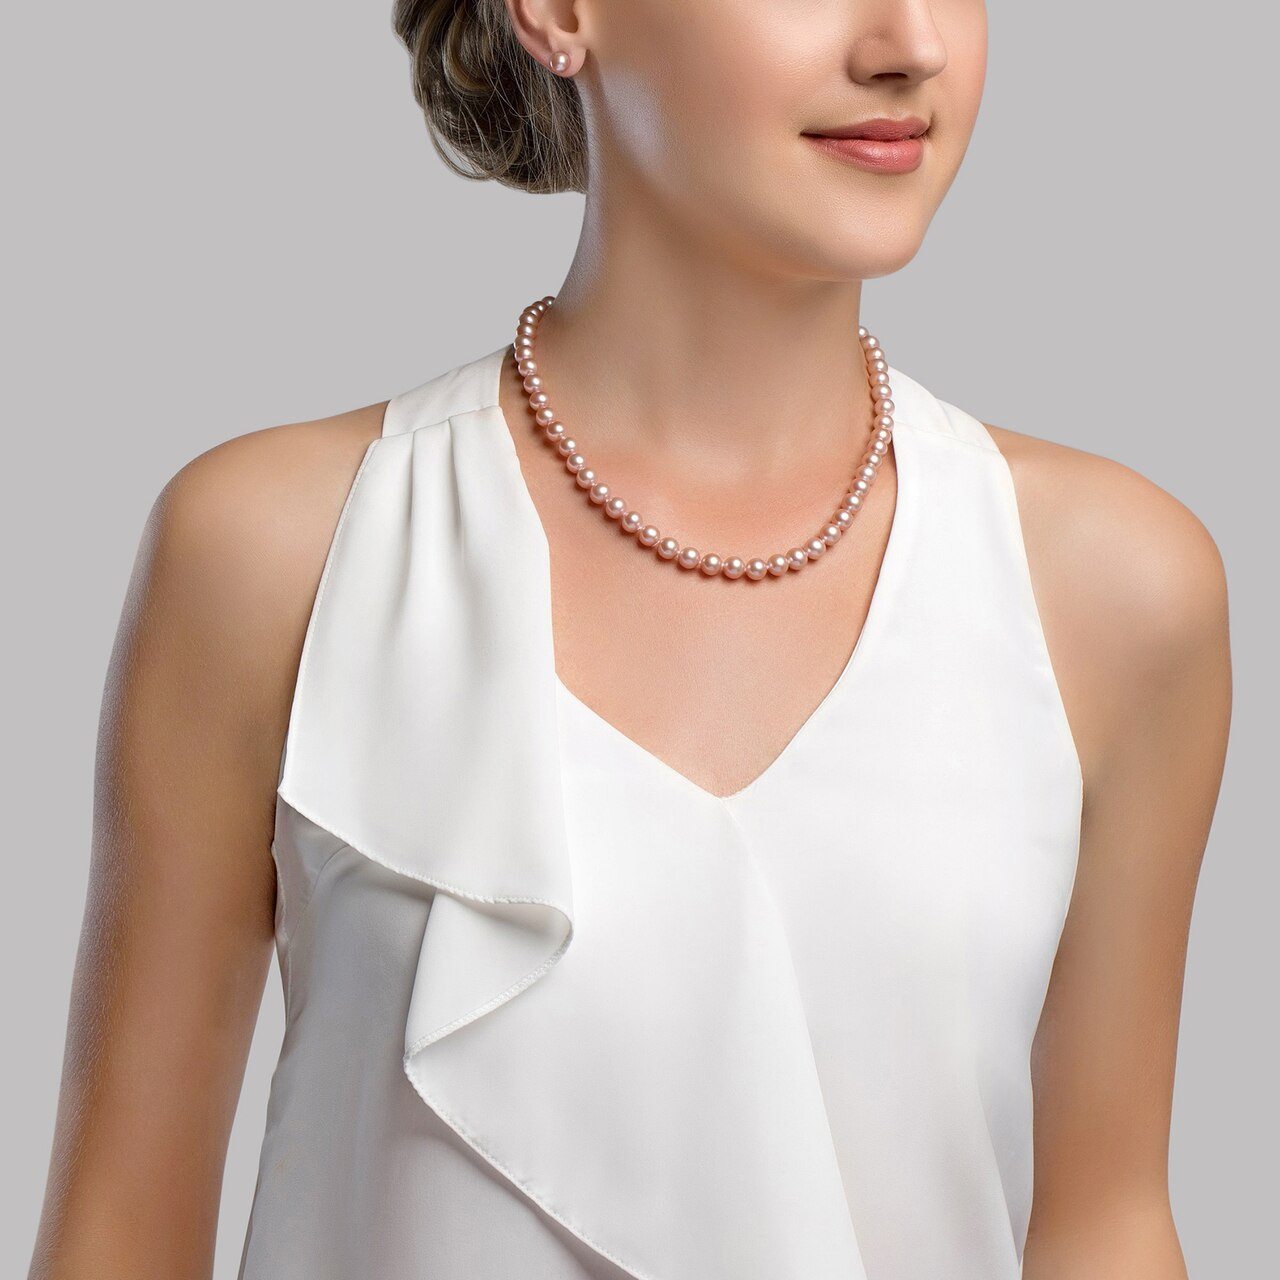 This gorgeous necklace features 8.0-9.0mm pink Freshwater pearls, handpicked for their luminous luster